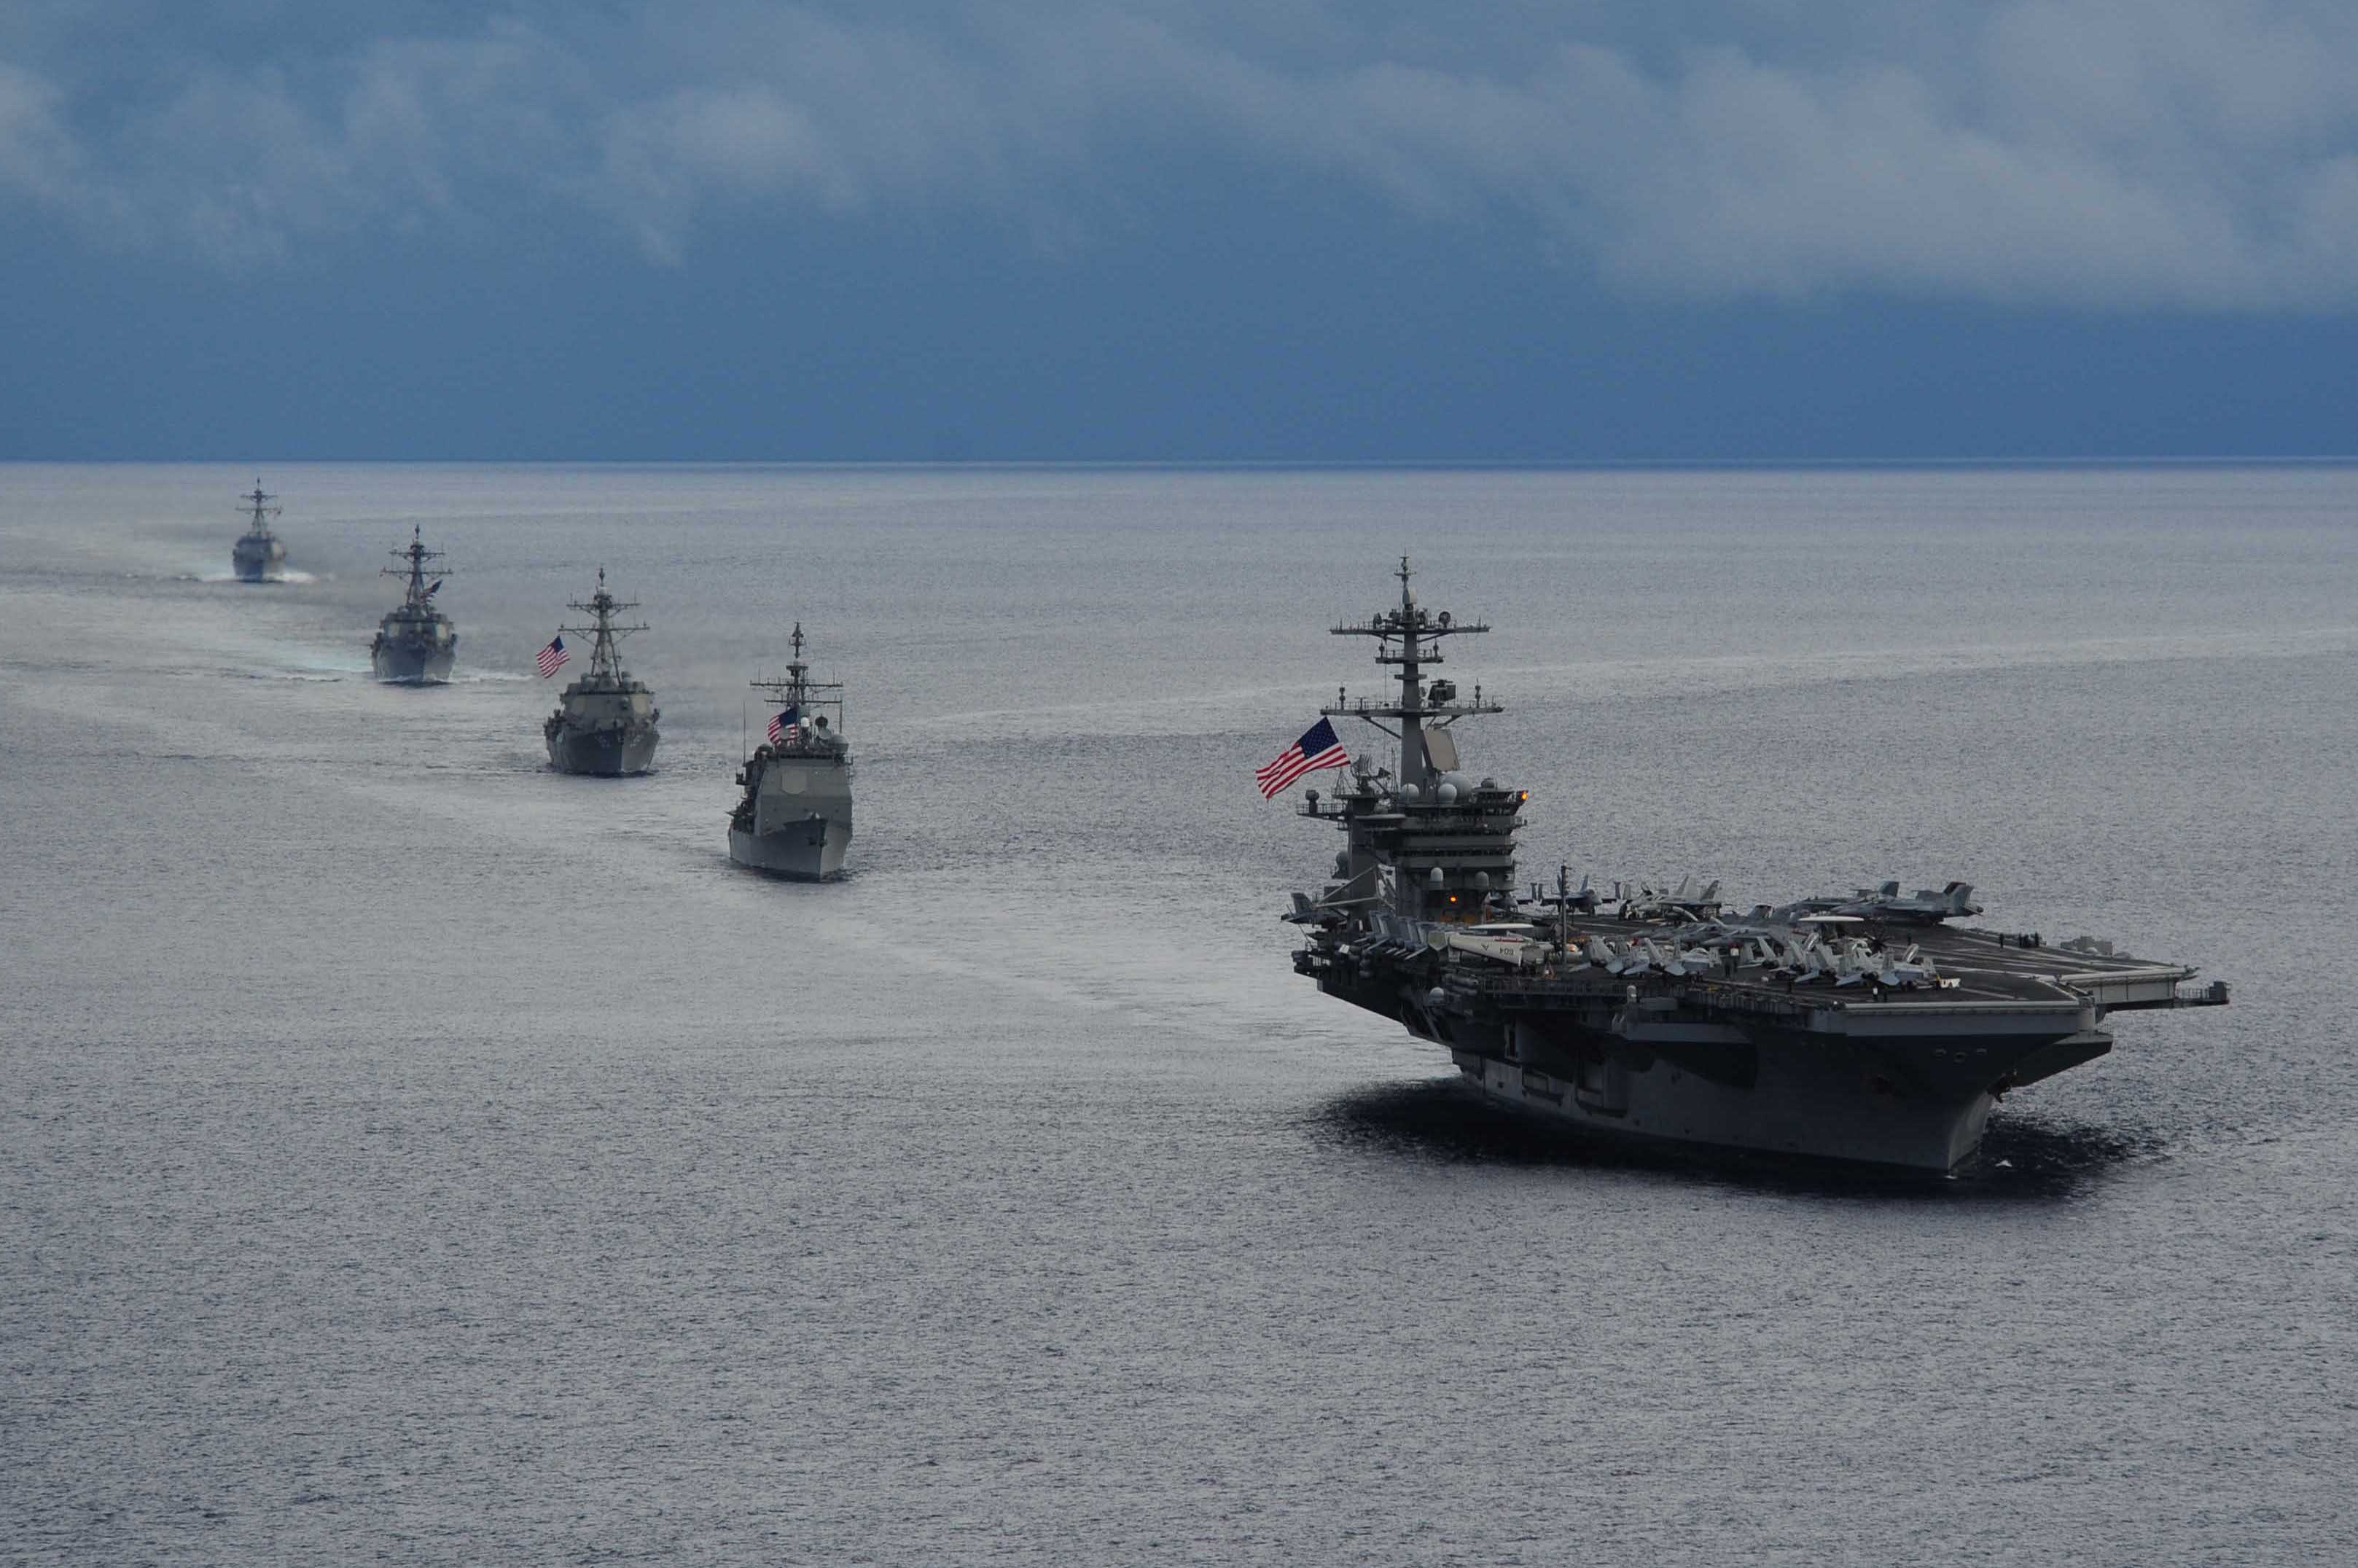 uss theodore roosevelt deployment delayed by clogged seawater uss theodore roosevelt cvn 71 leads a formation of ships from carrier strike